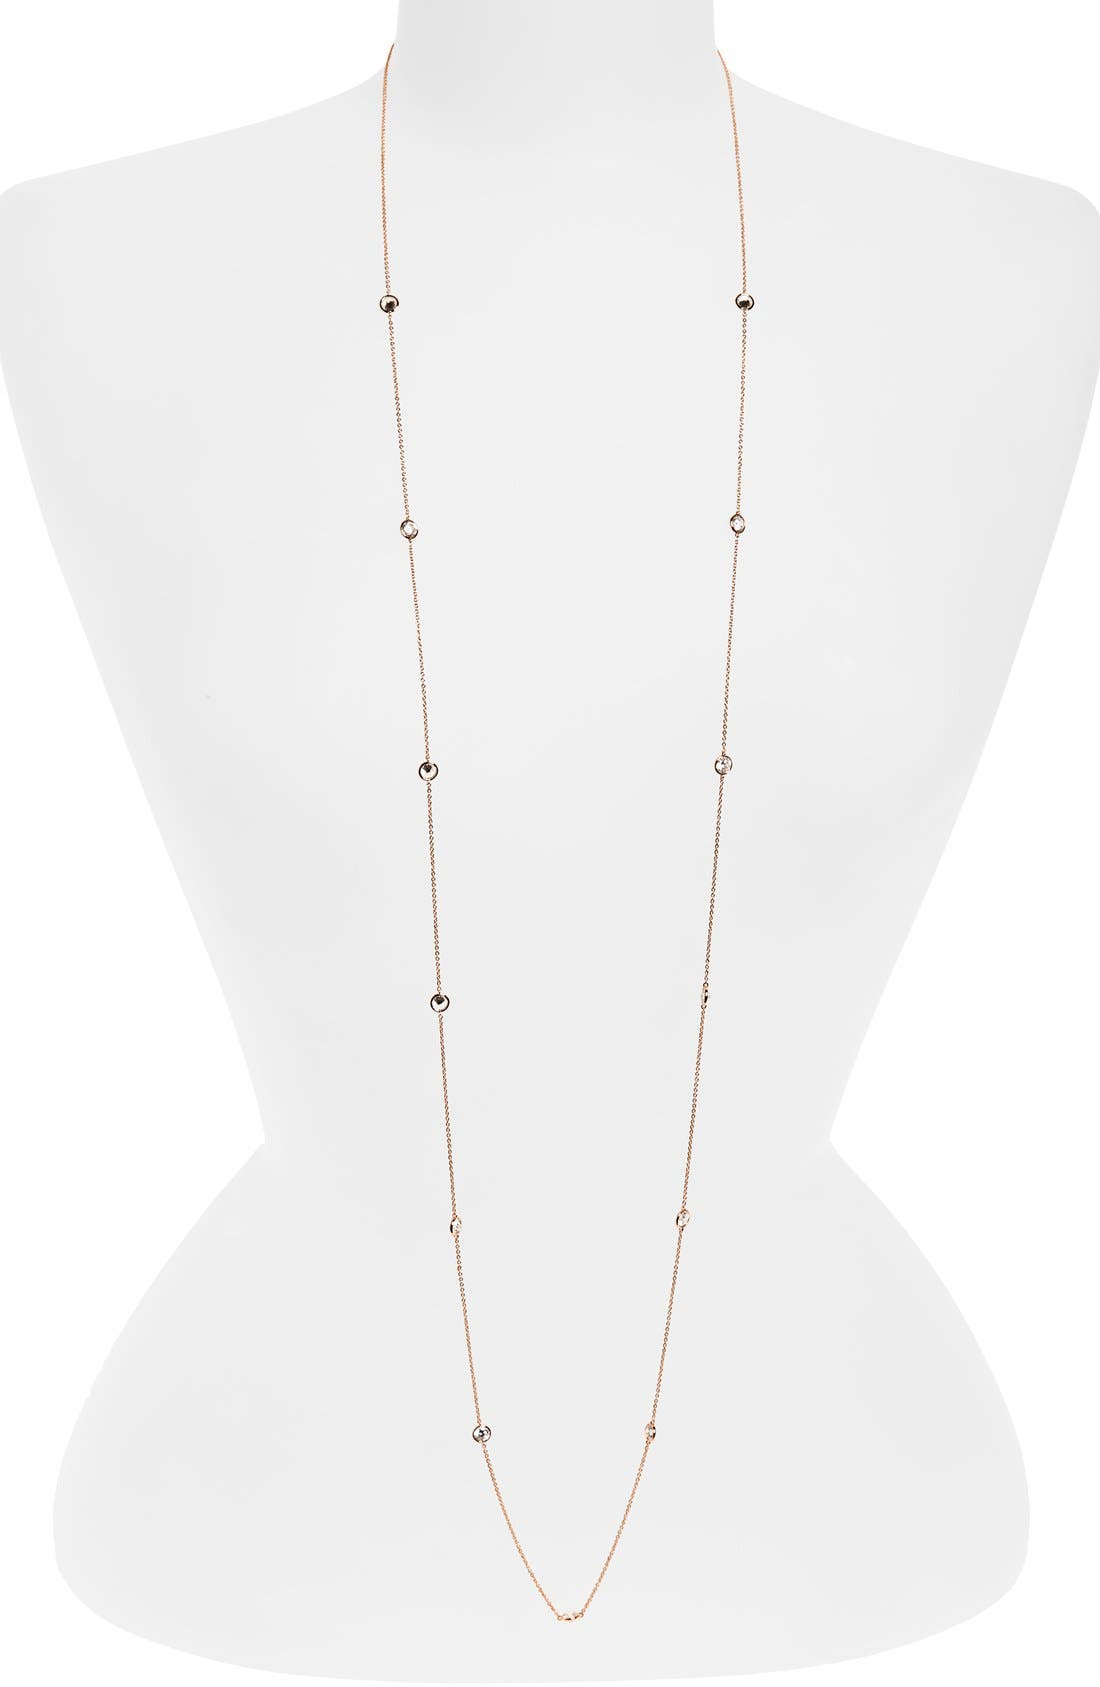 Main Image - Nadri Long Bezel Station Necklace